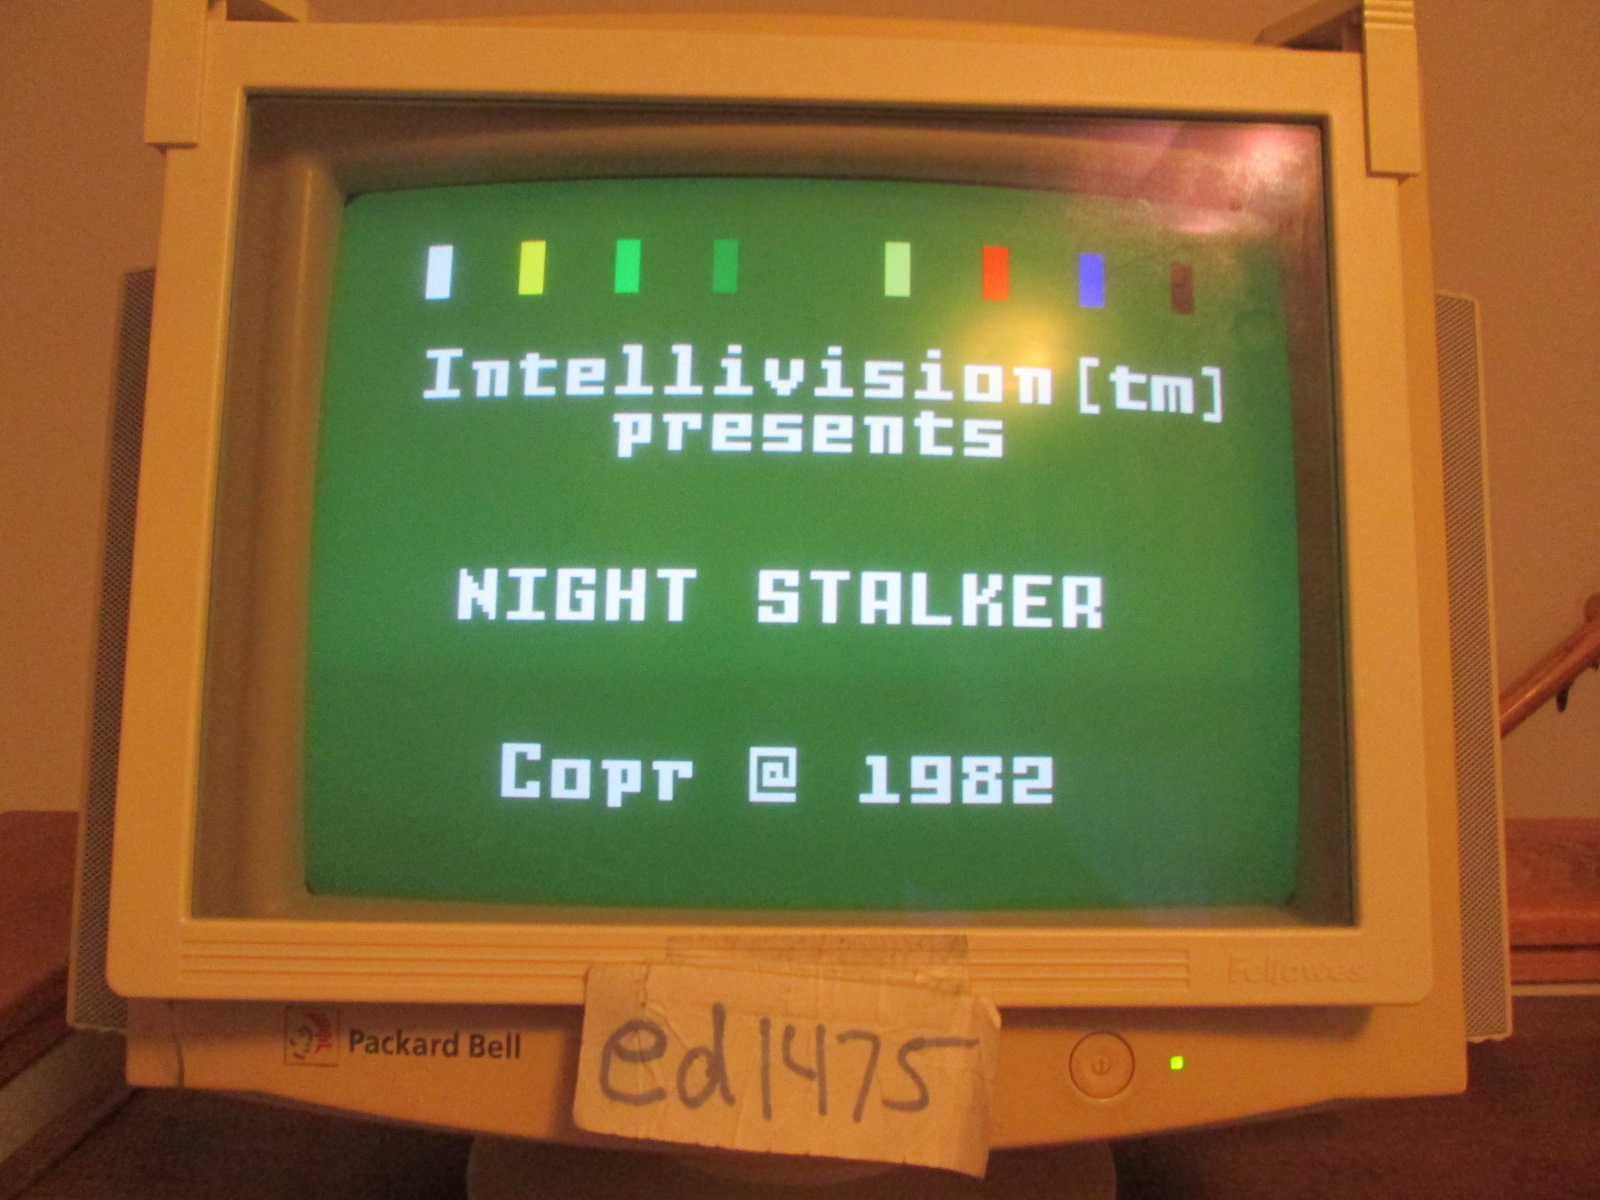 ed1475: Intellivision for PC: Night Stalker: Game Disc [Fastest] (PC) 8,300 points on 2016-10-29 17:54:05